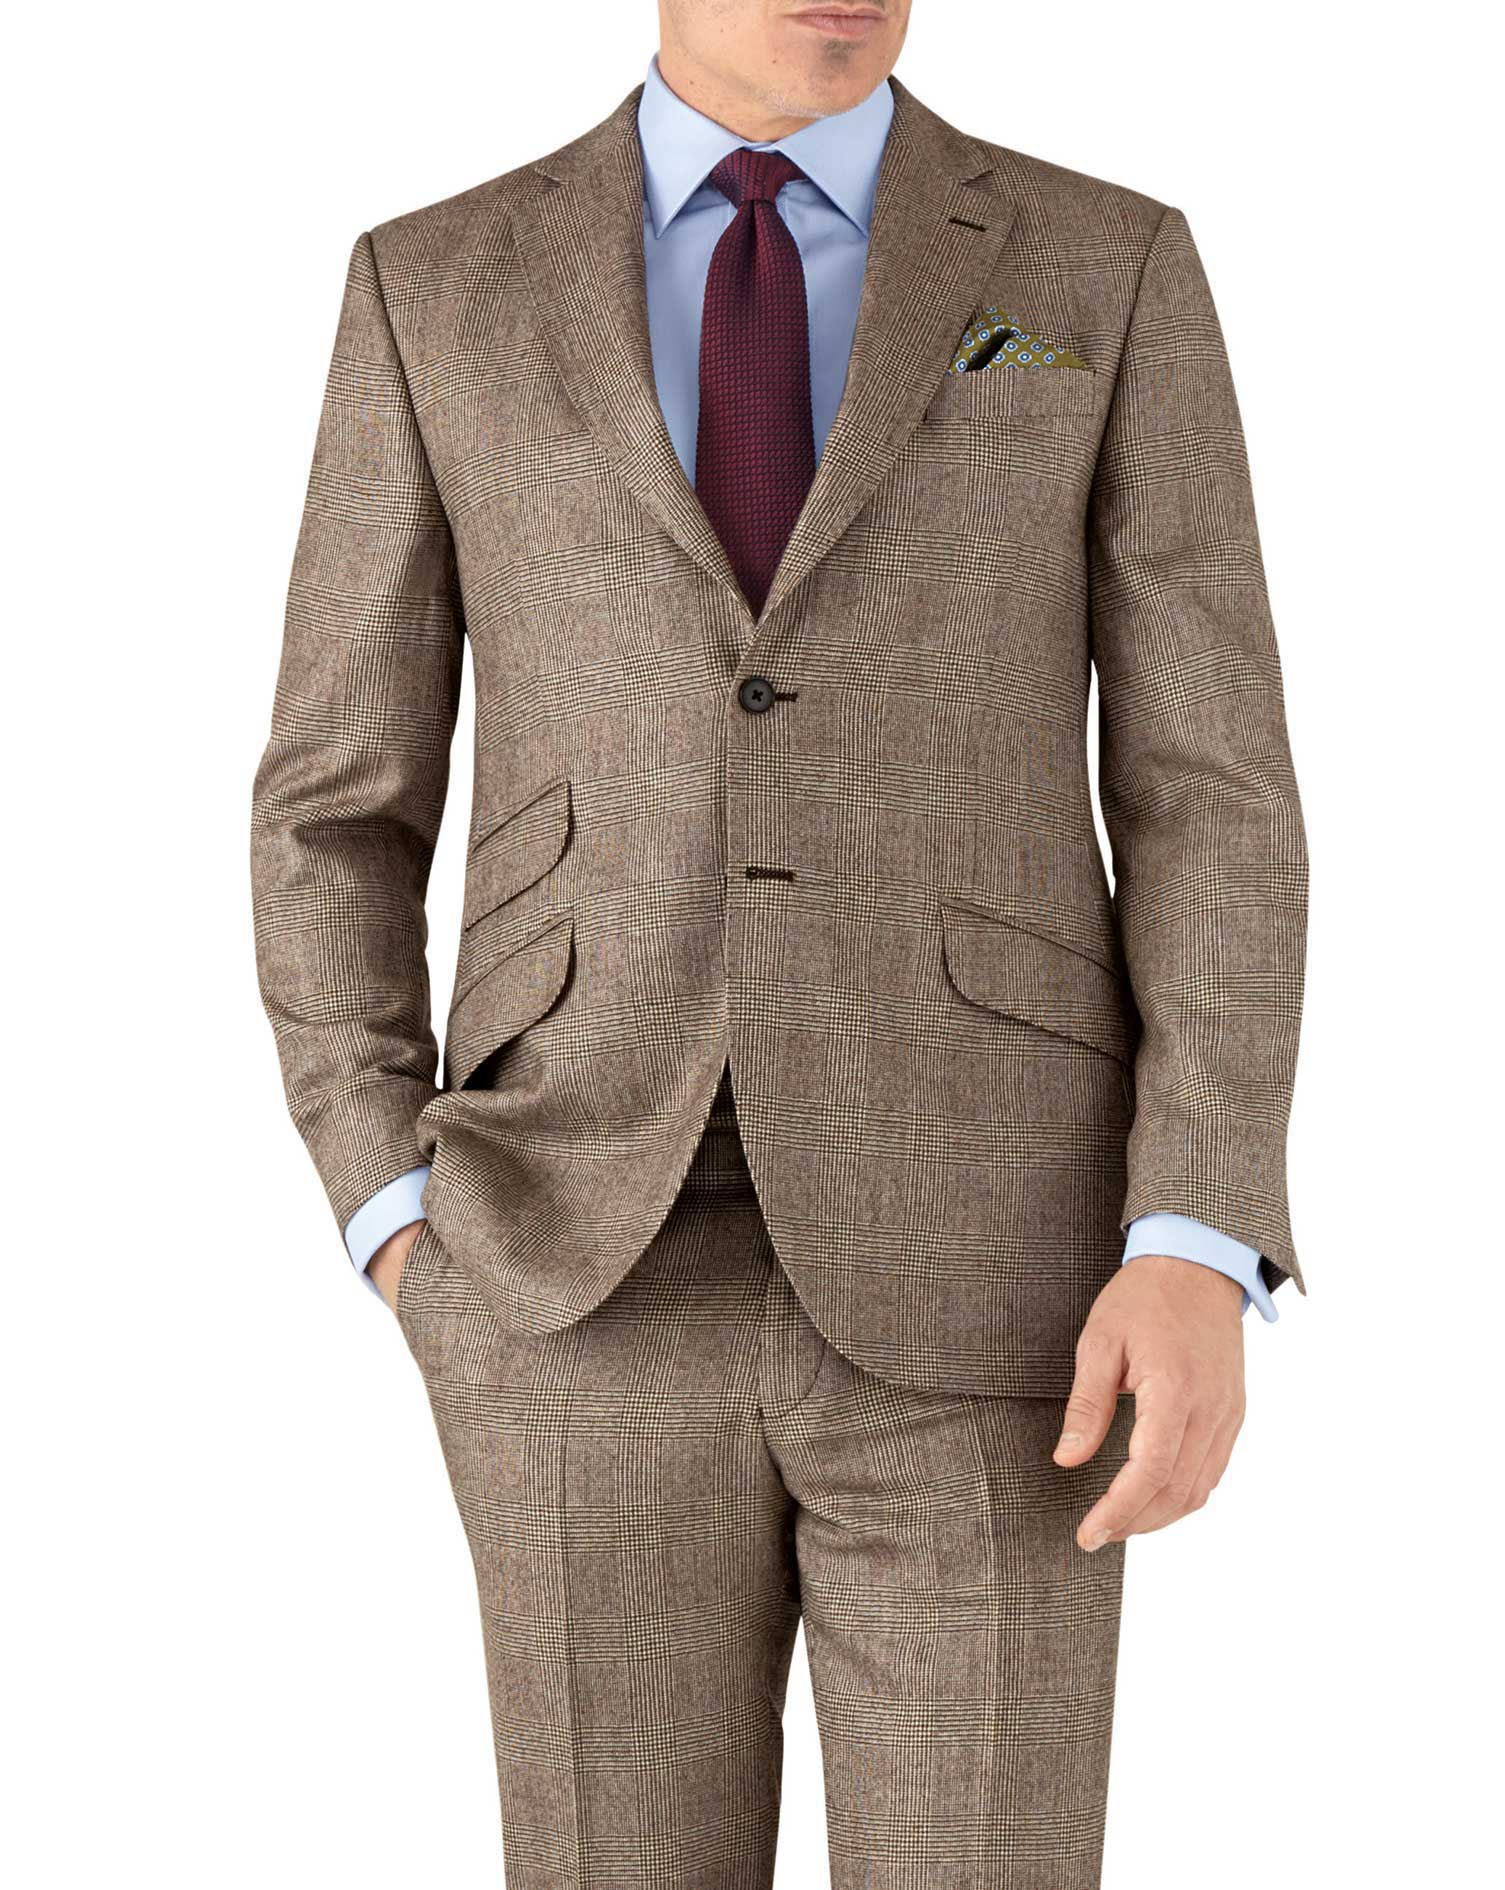 Tan Check Classic Fit British Serge Luxury Suit Wool Jacket Size 38 Long by Charles Tyrwhitt